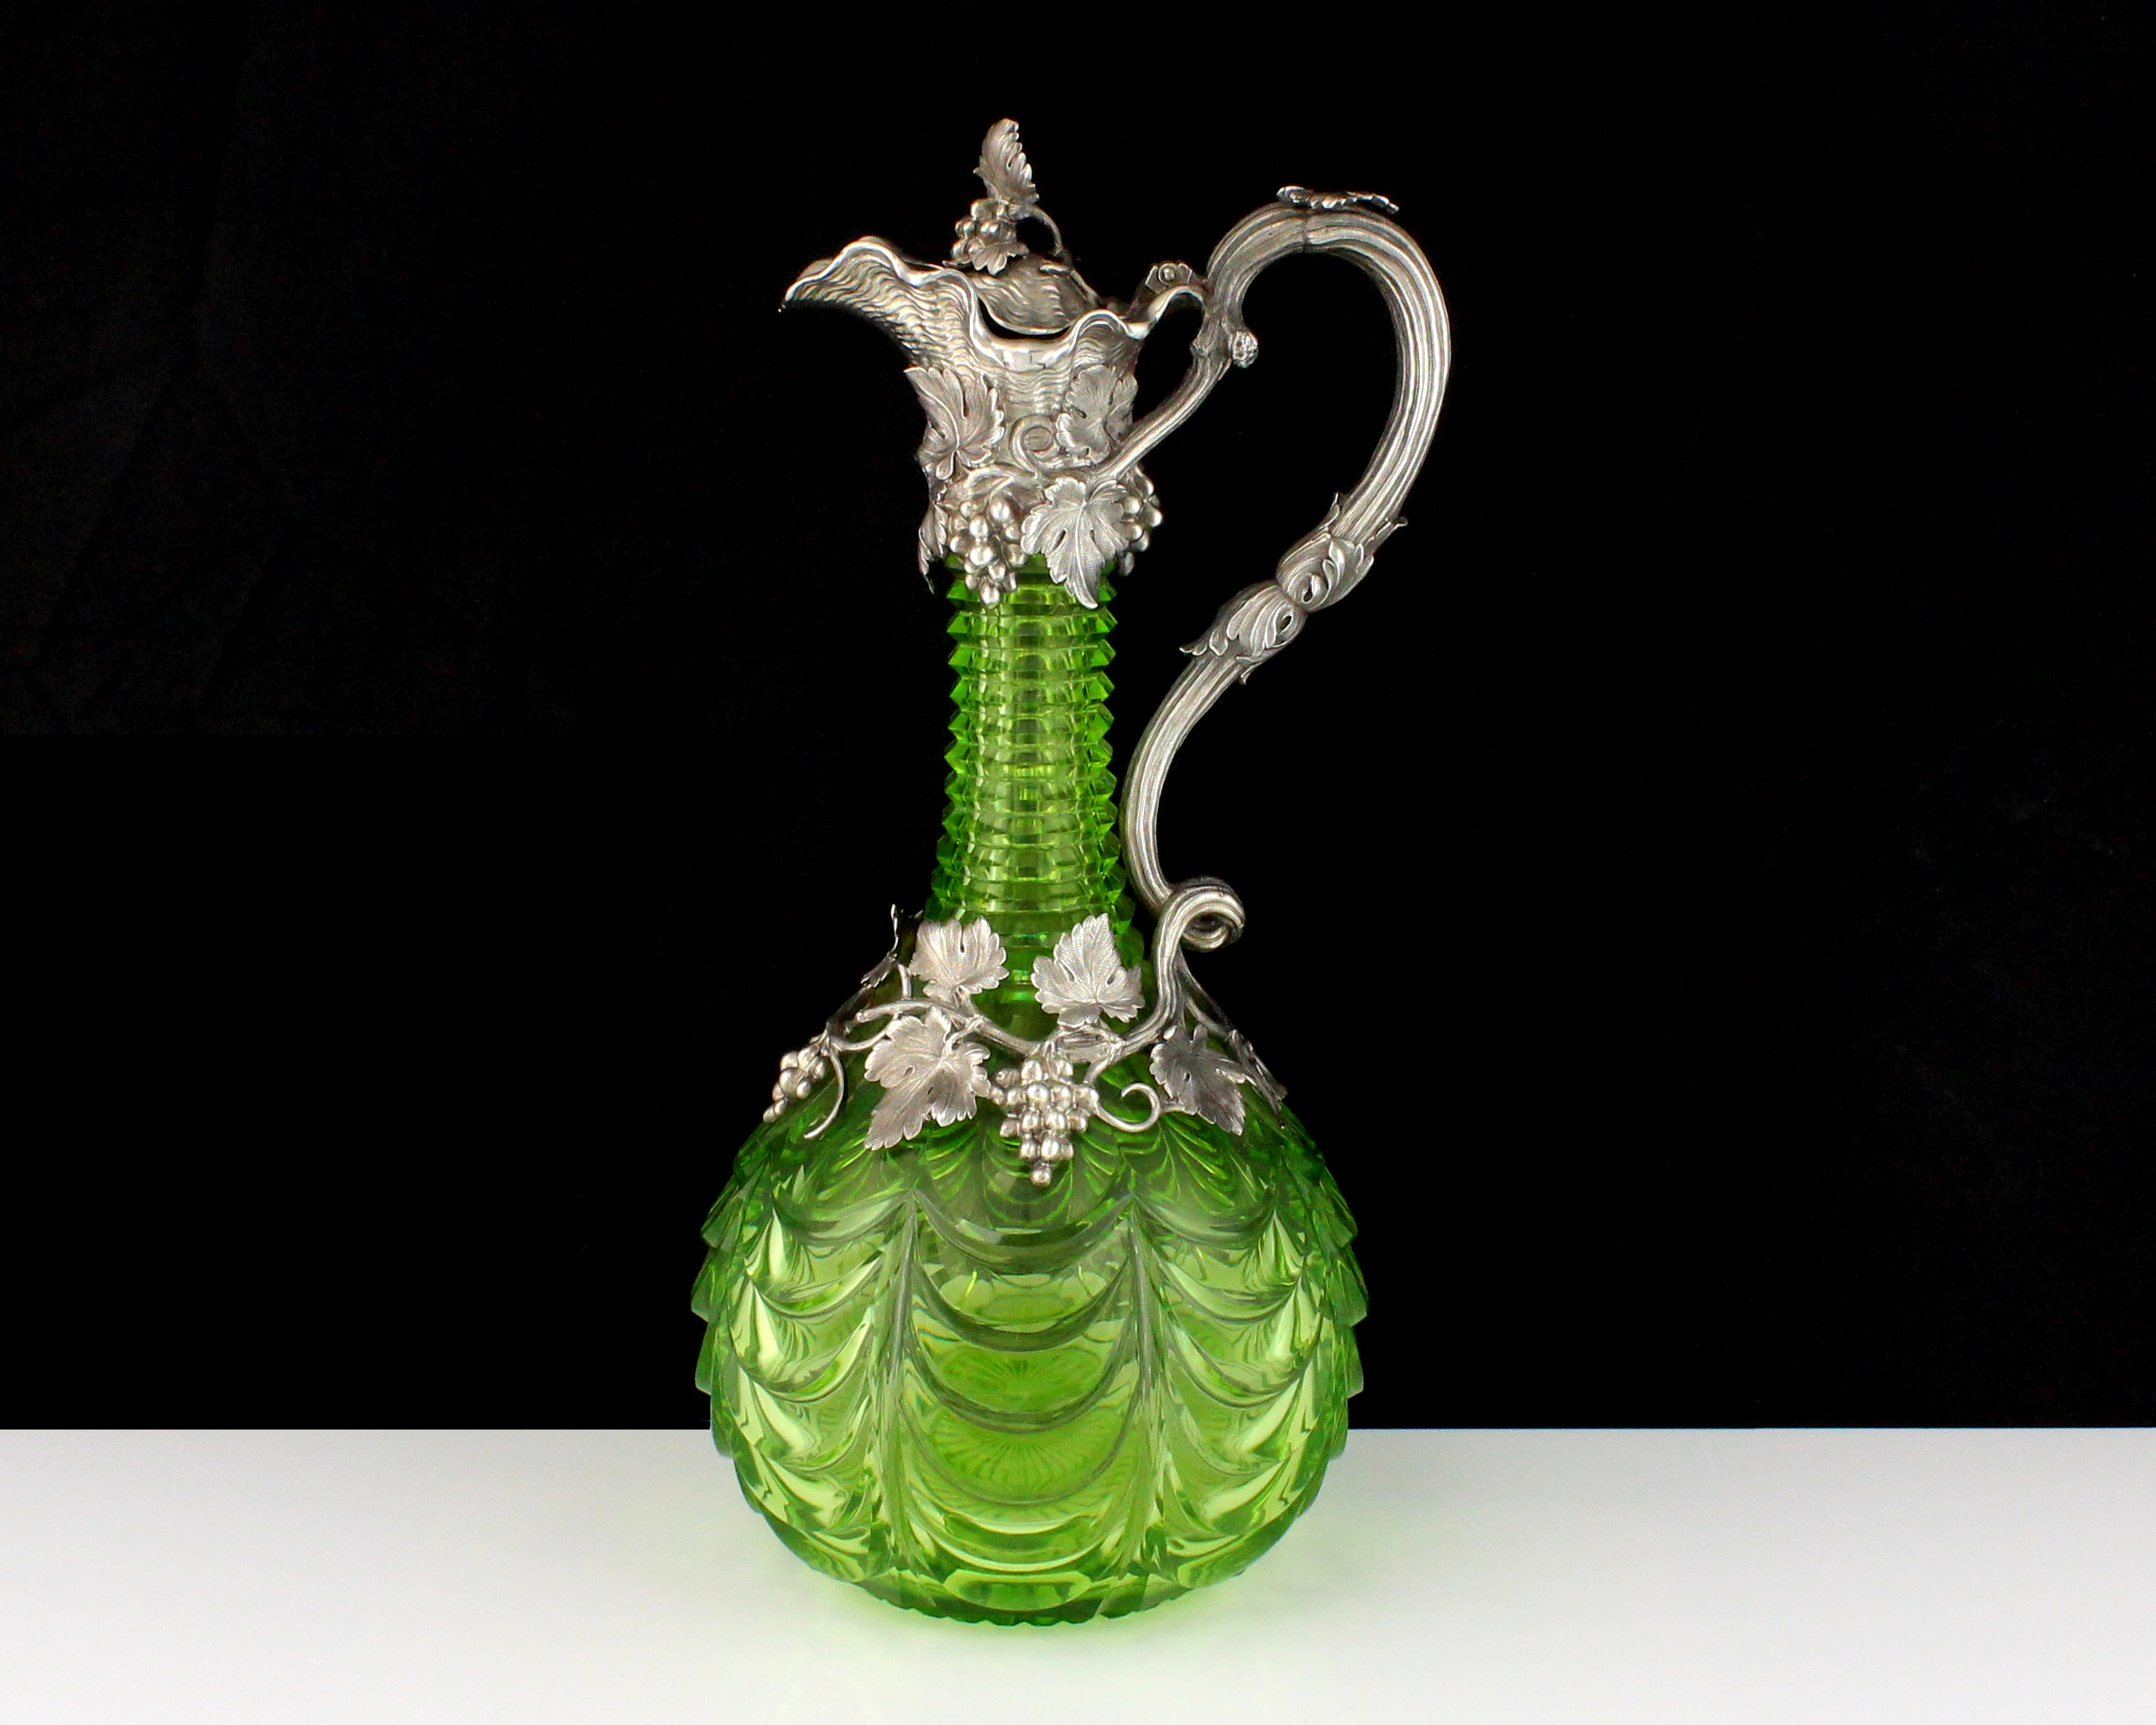 An antique Victorian Sterling Silver mounted claret jug by the Barnard Brothers, London 1839 the